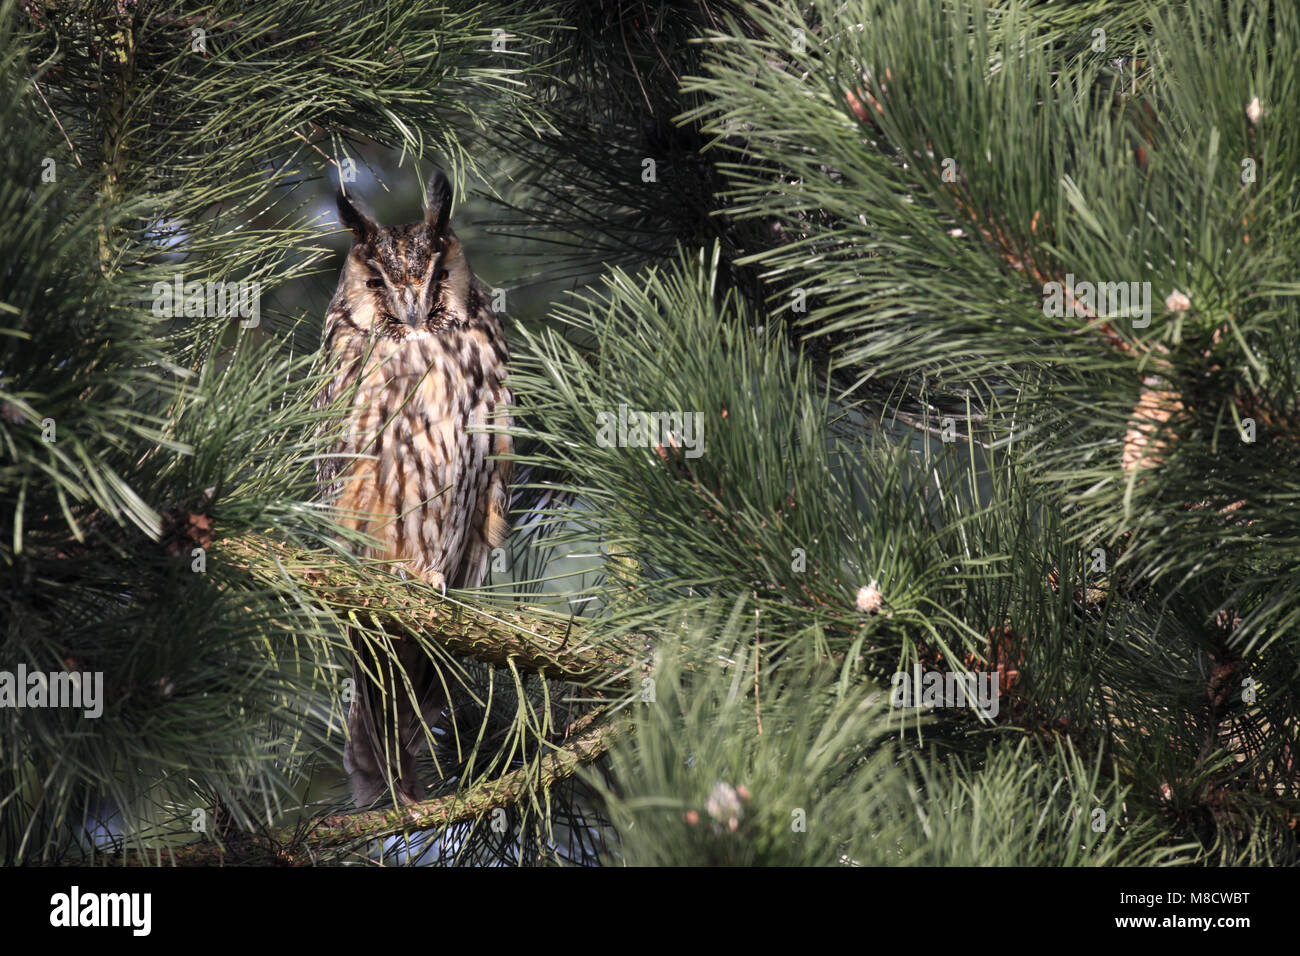 Ransuil zittend in een boom; Long-eared Owl perched in a tree - Stock Image